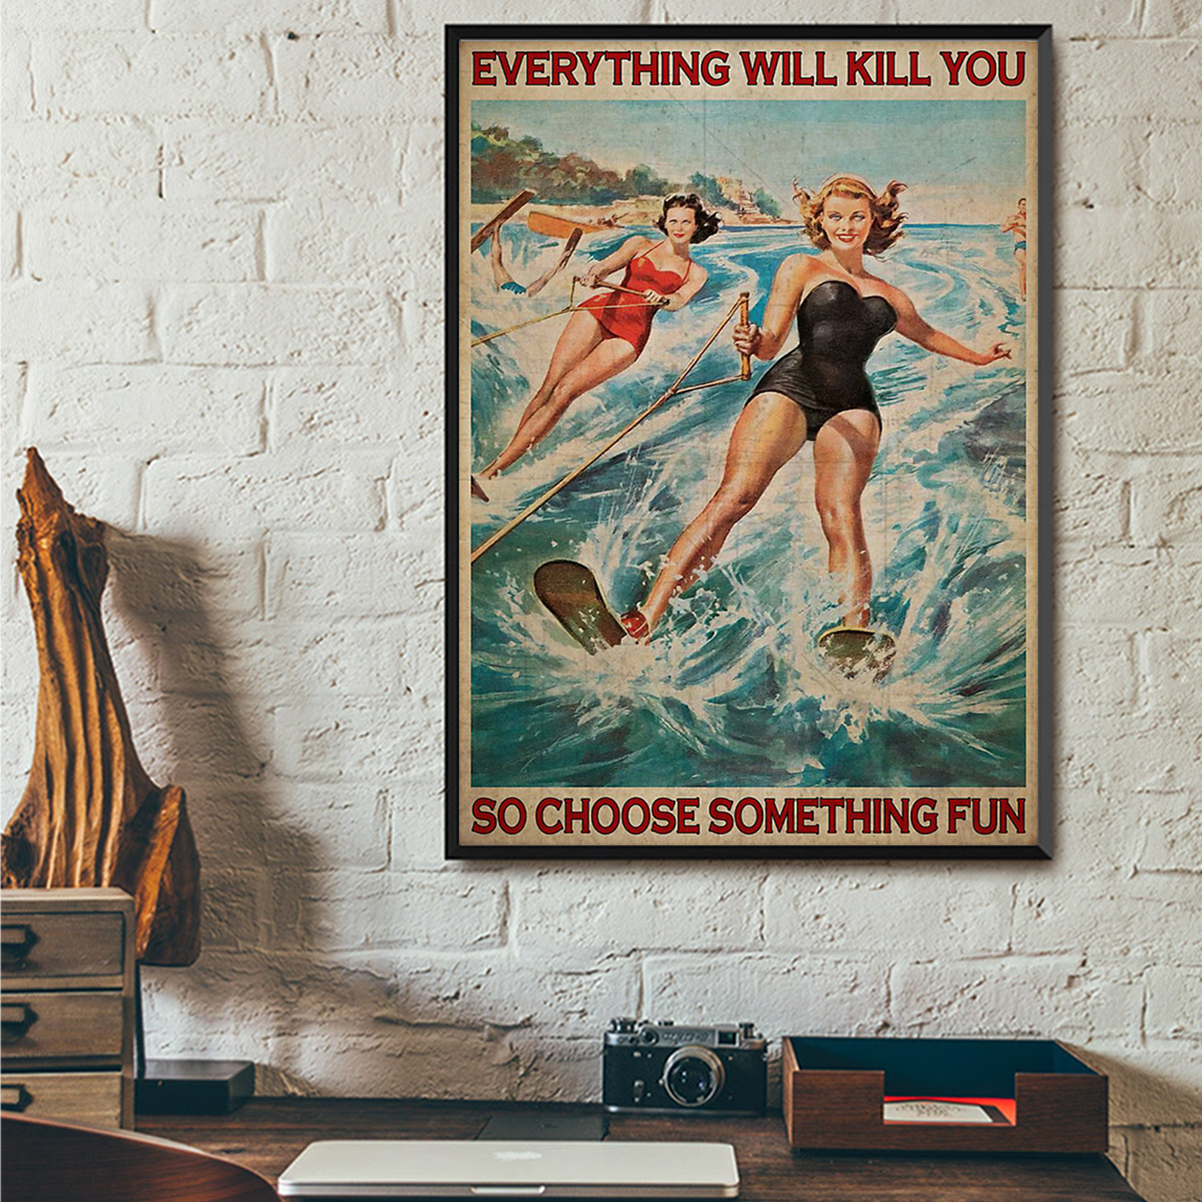 Water skiing everything will kill you so choose something fun poster A1